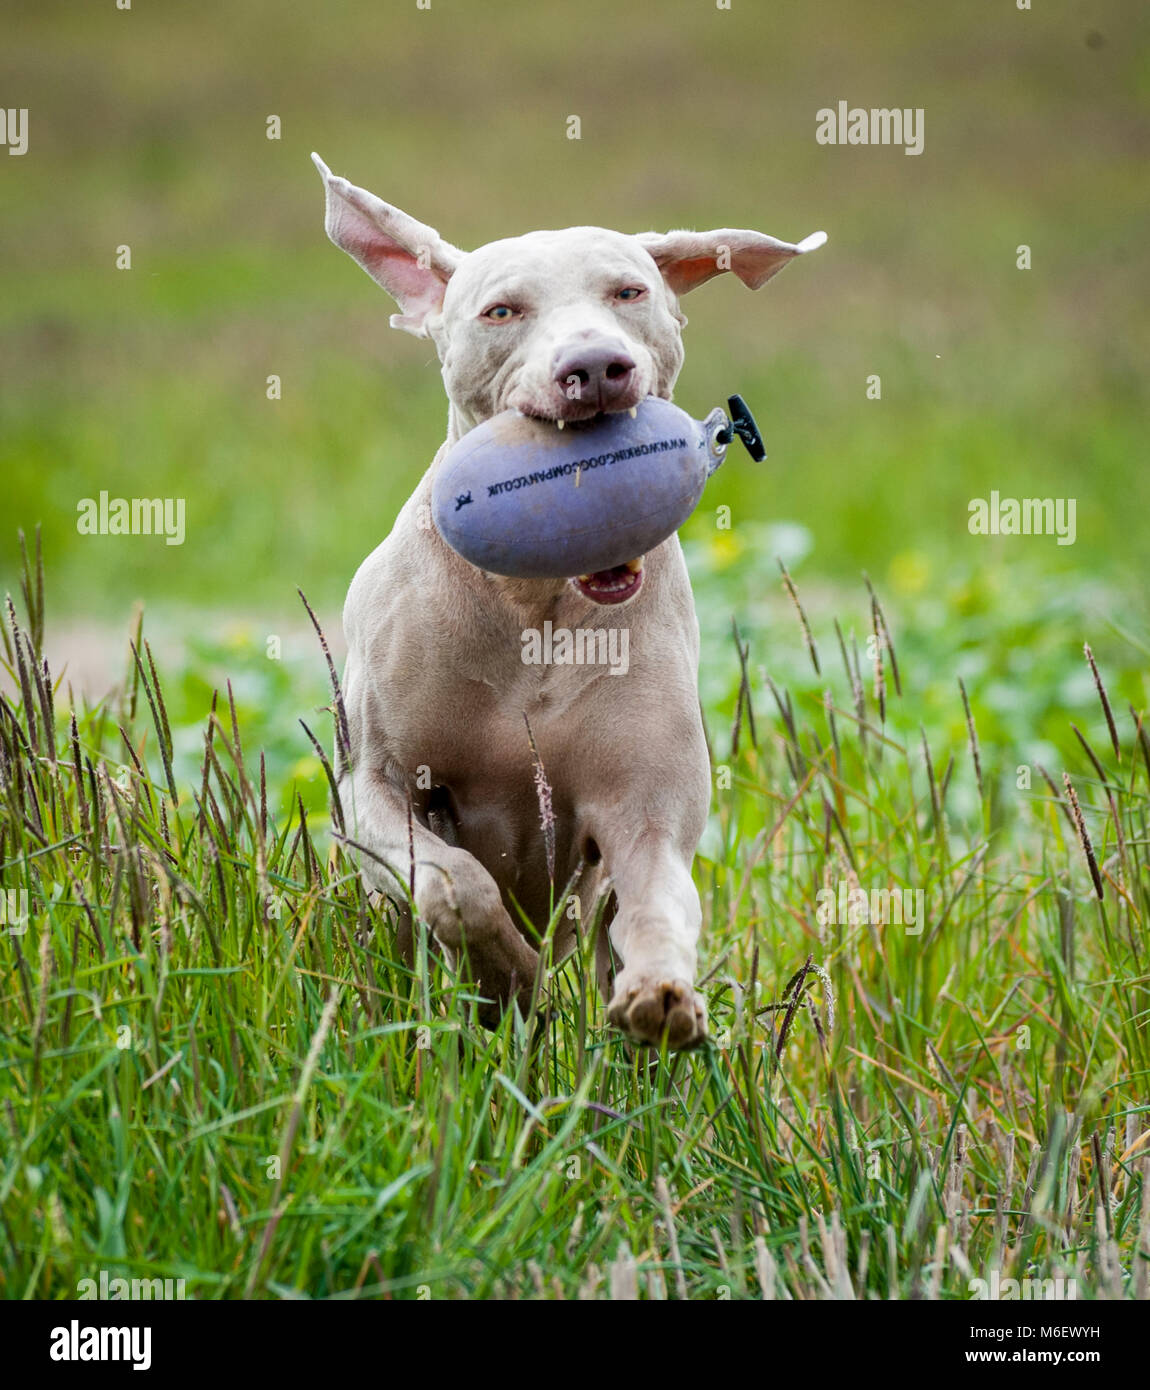 Weimaraner dog running in a field with a training dummy in its mouth Stock Photo